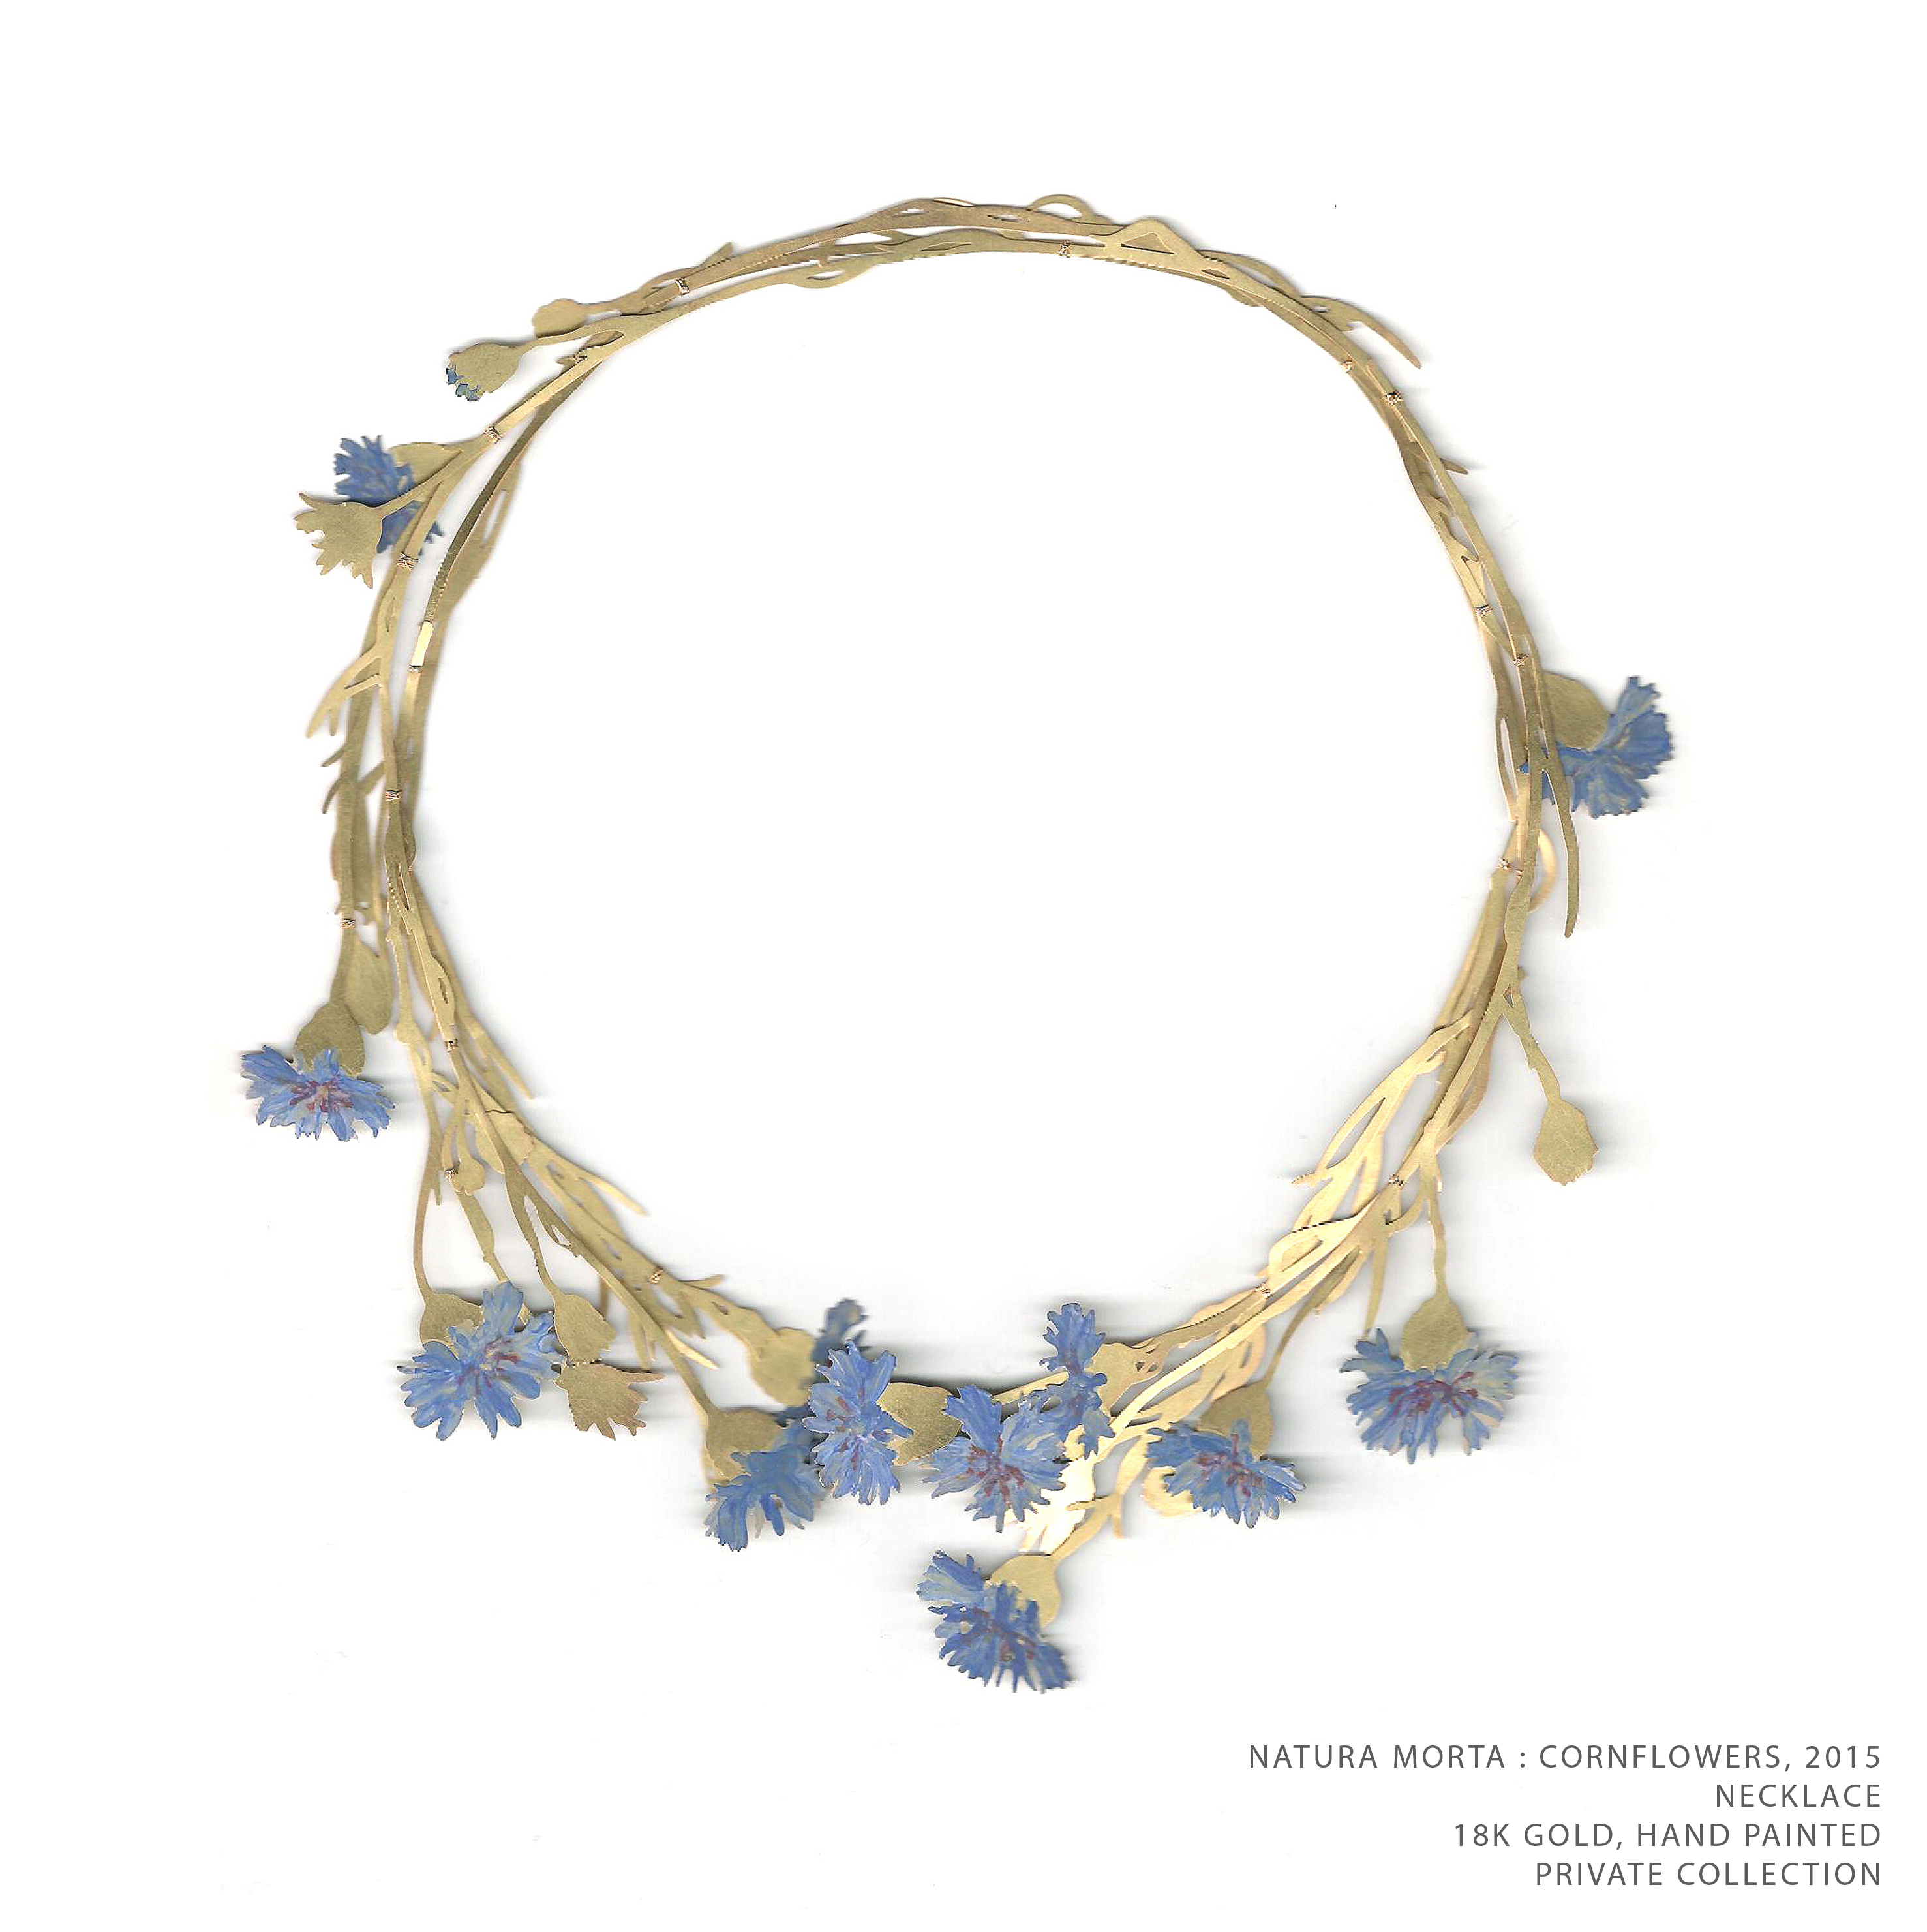 Natura Morta Cornflower Necklace 2015 TEXT